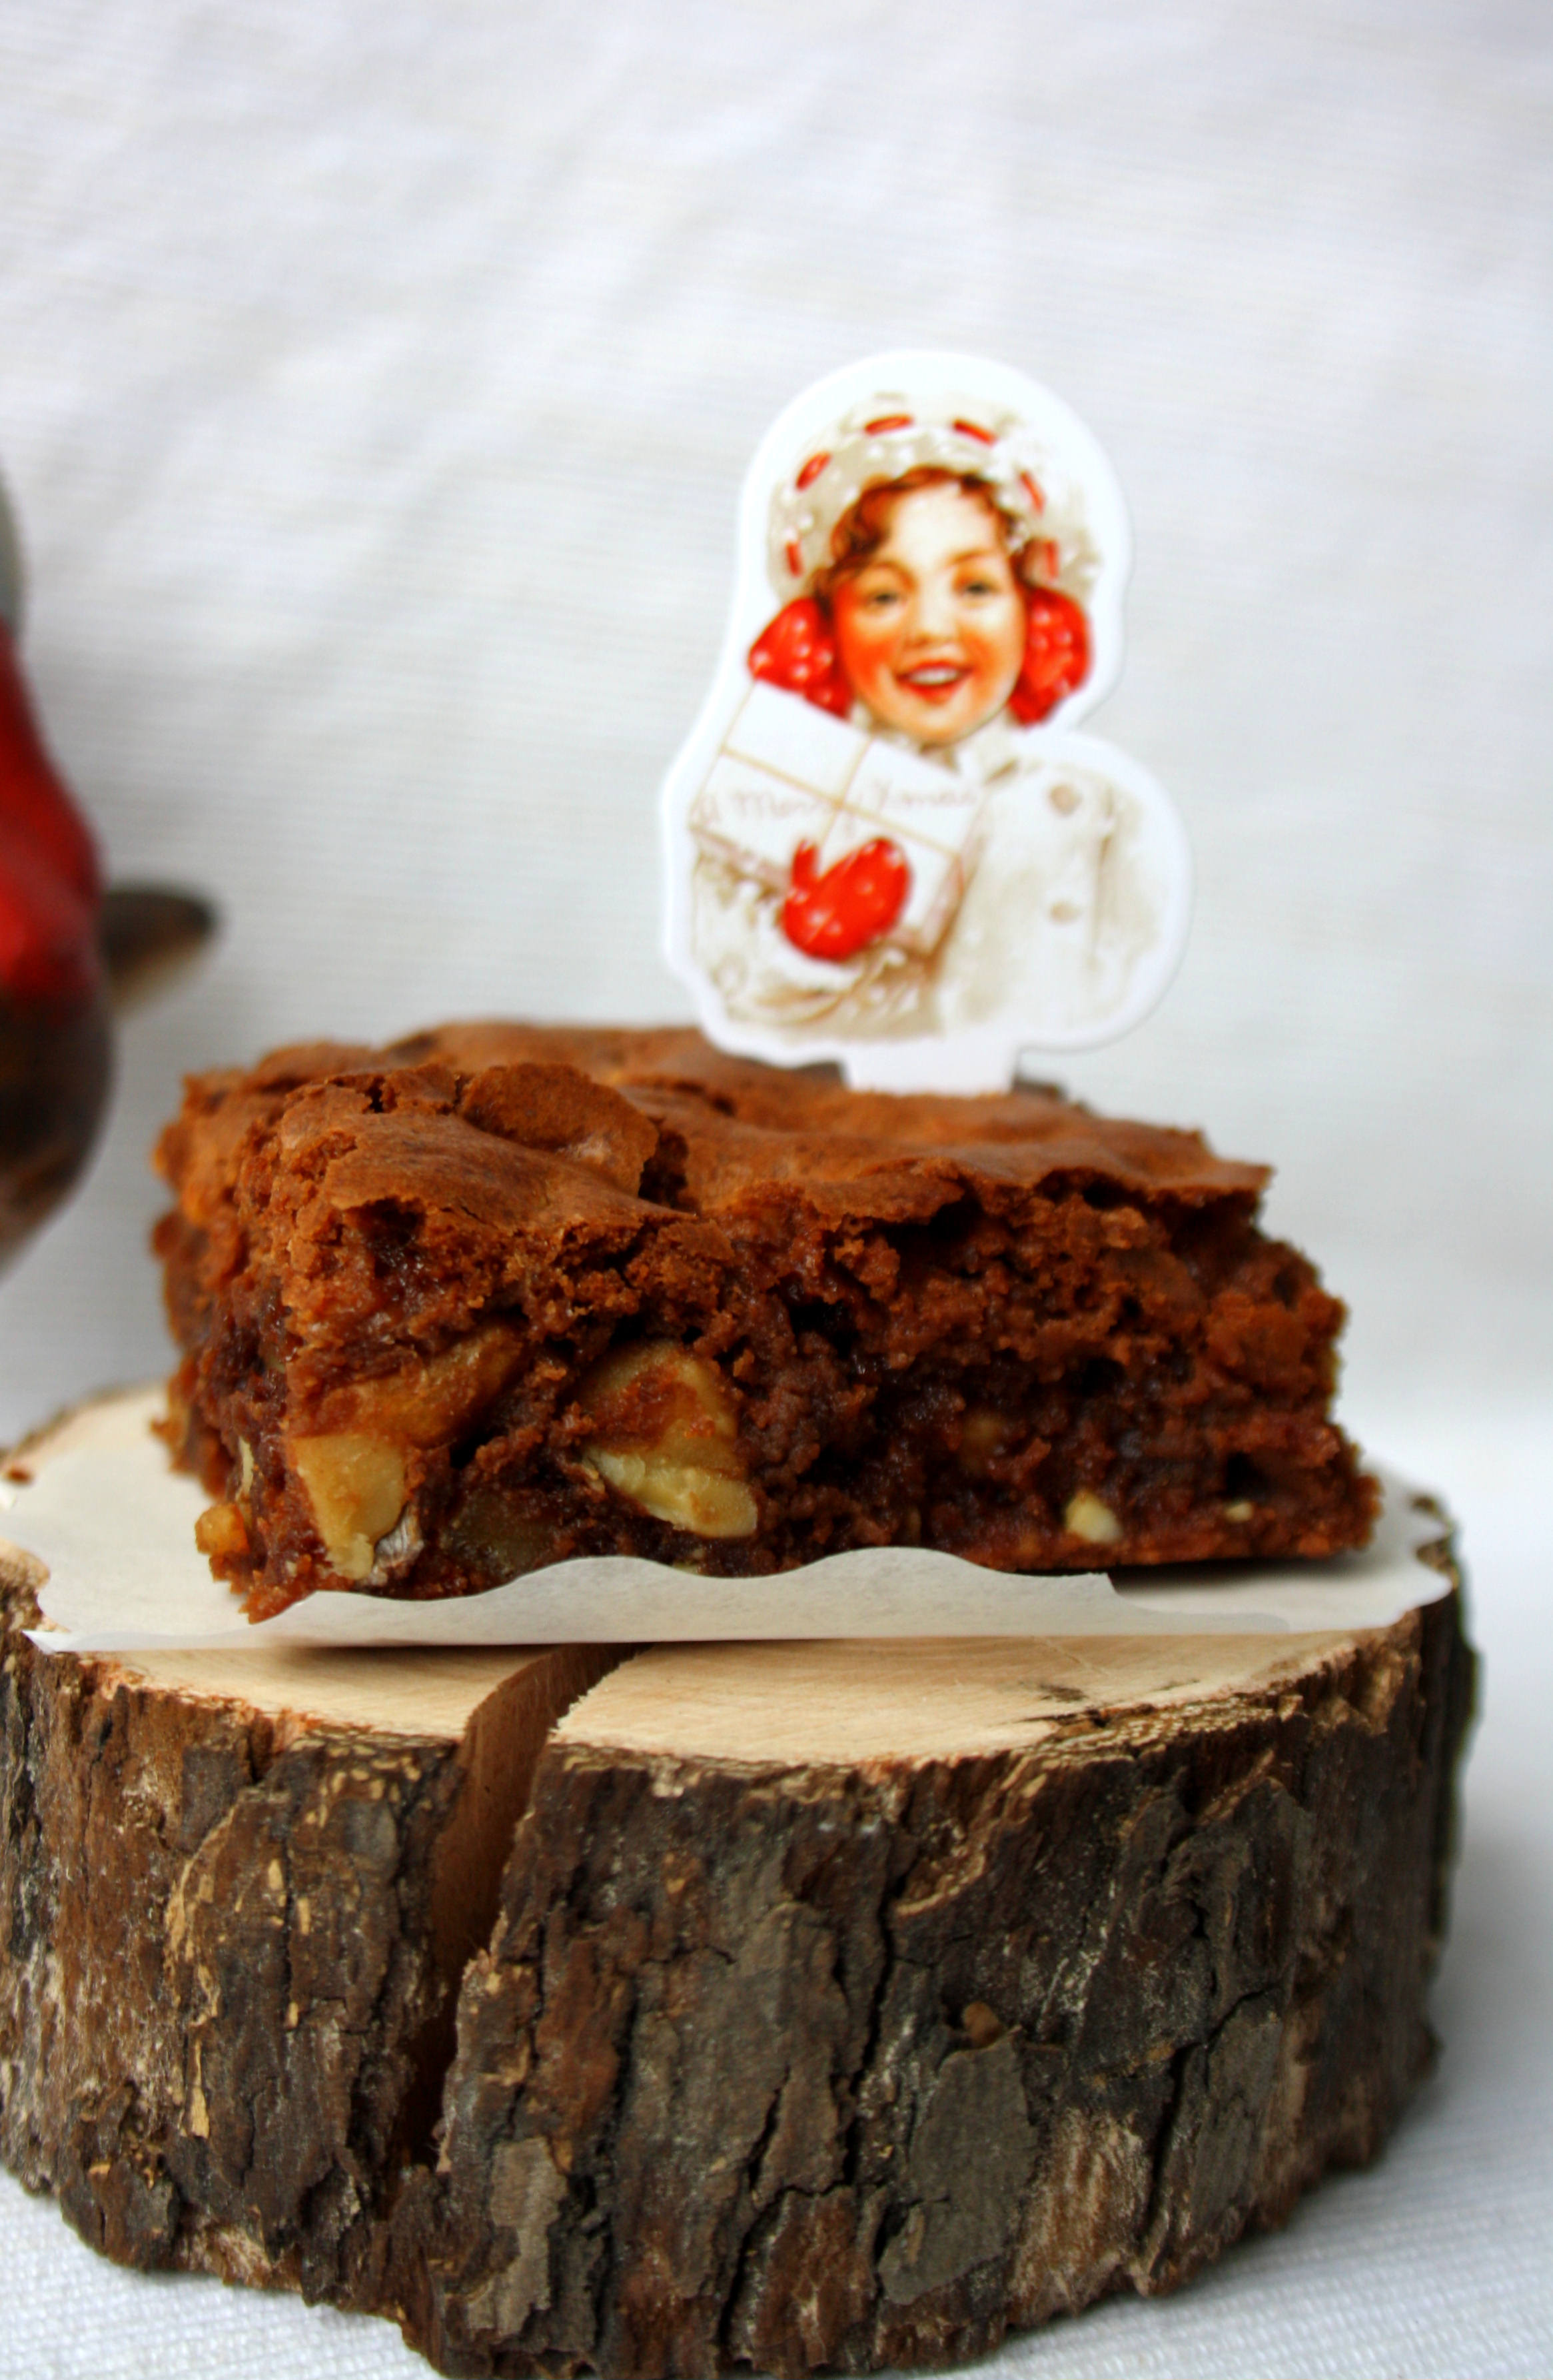 Brownies mit Aprikosen // Brownies with apricots by http://babyrockmyday.com/brownies-mit-apricosen/